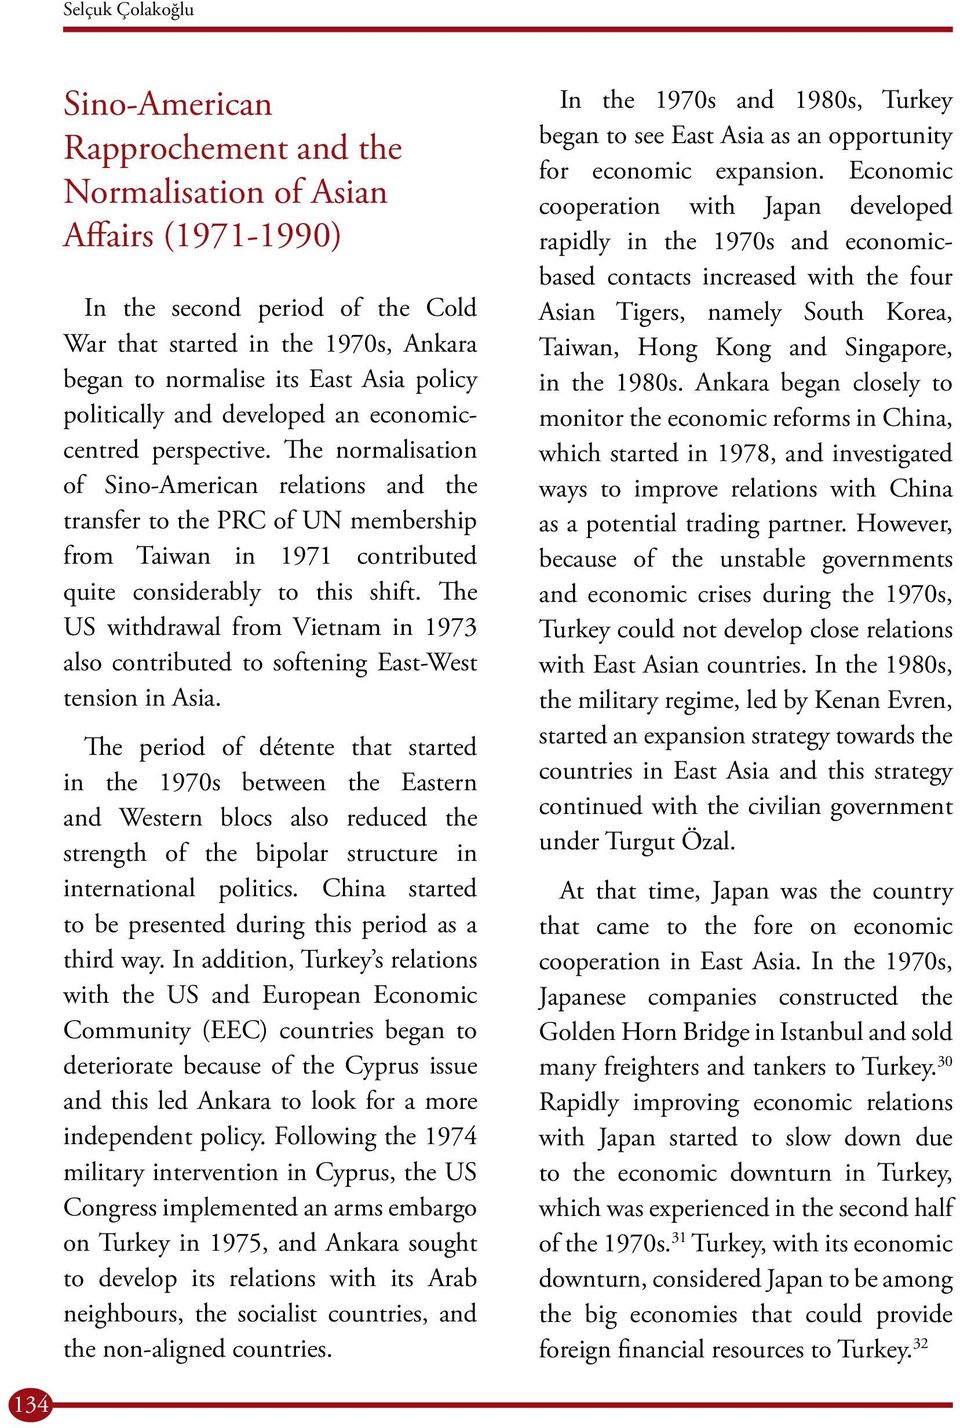 The normalisation of Sino-American relations and the transfer to the PRC of UN membership from Taiwan in 1971 contributed quite considerably to this shift.